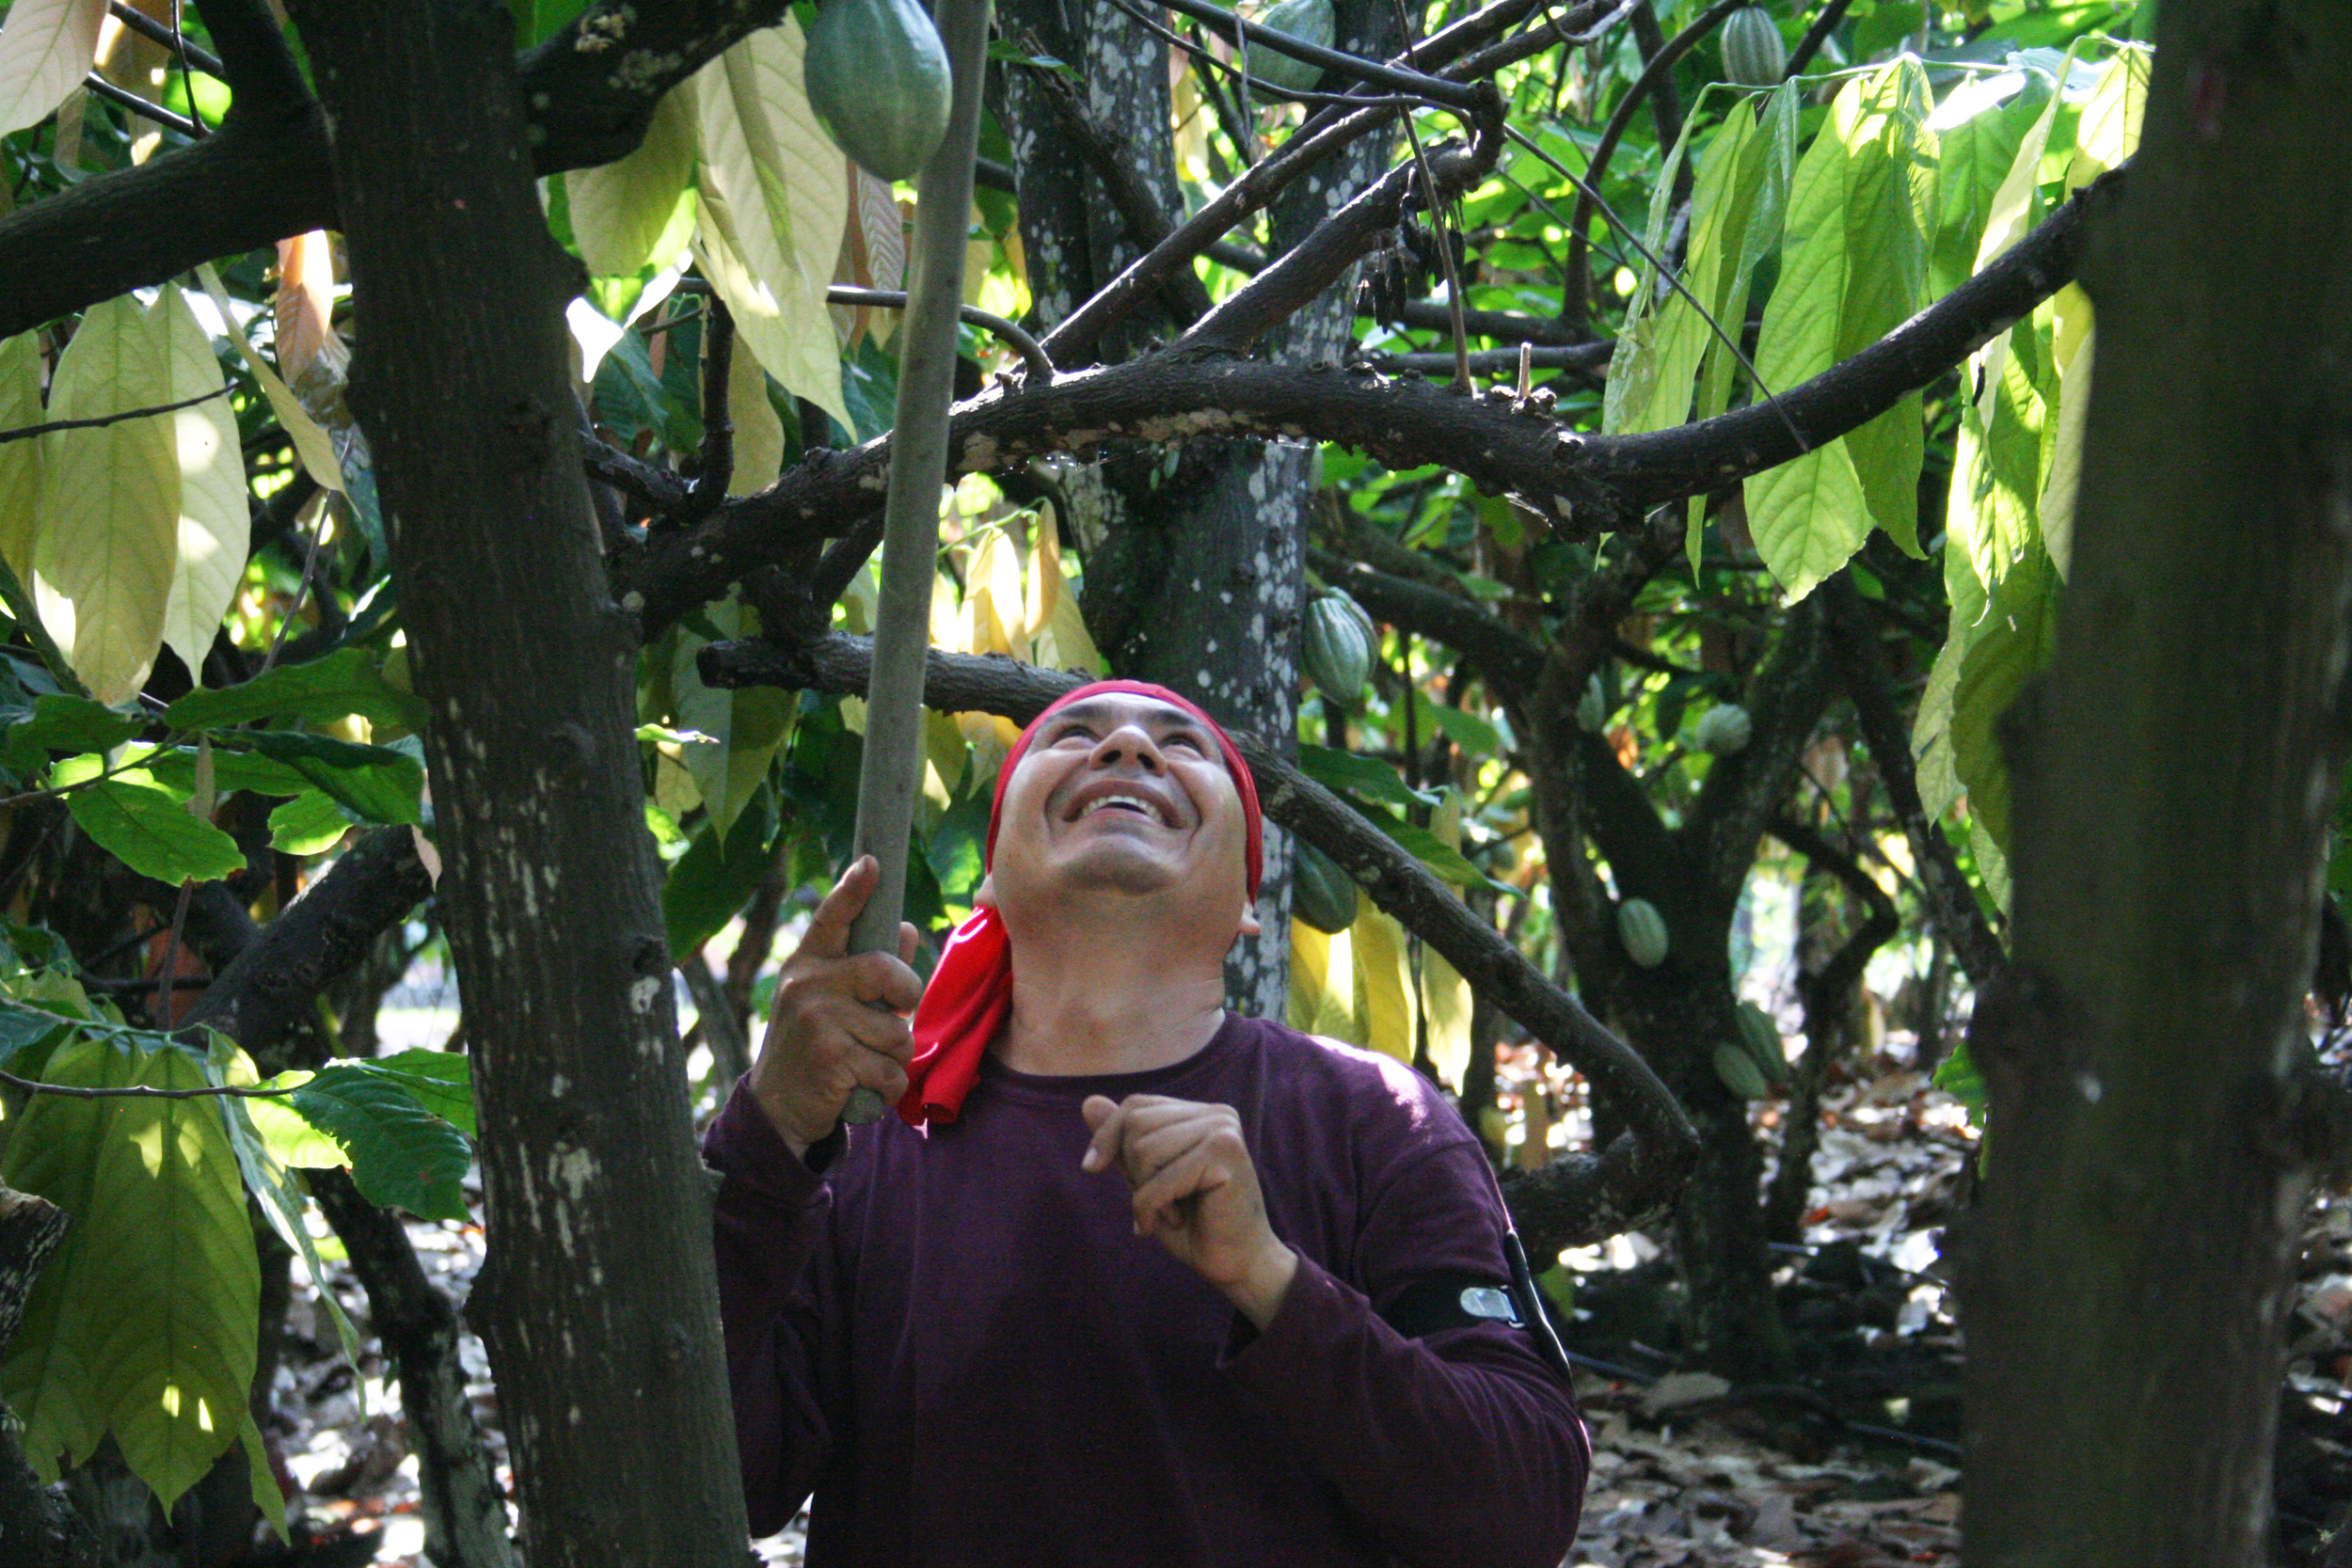 Harvesting cacao at Original Hawaiian Chocolate